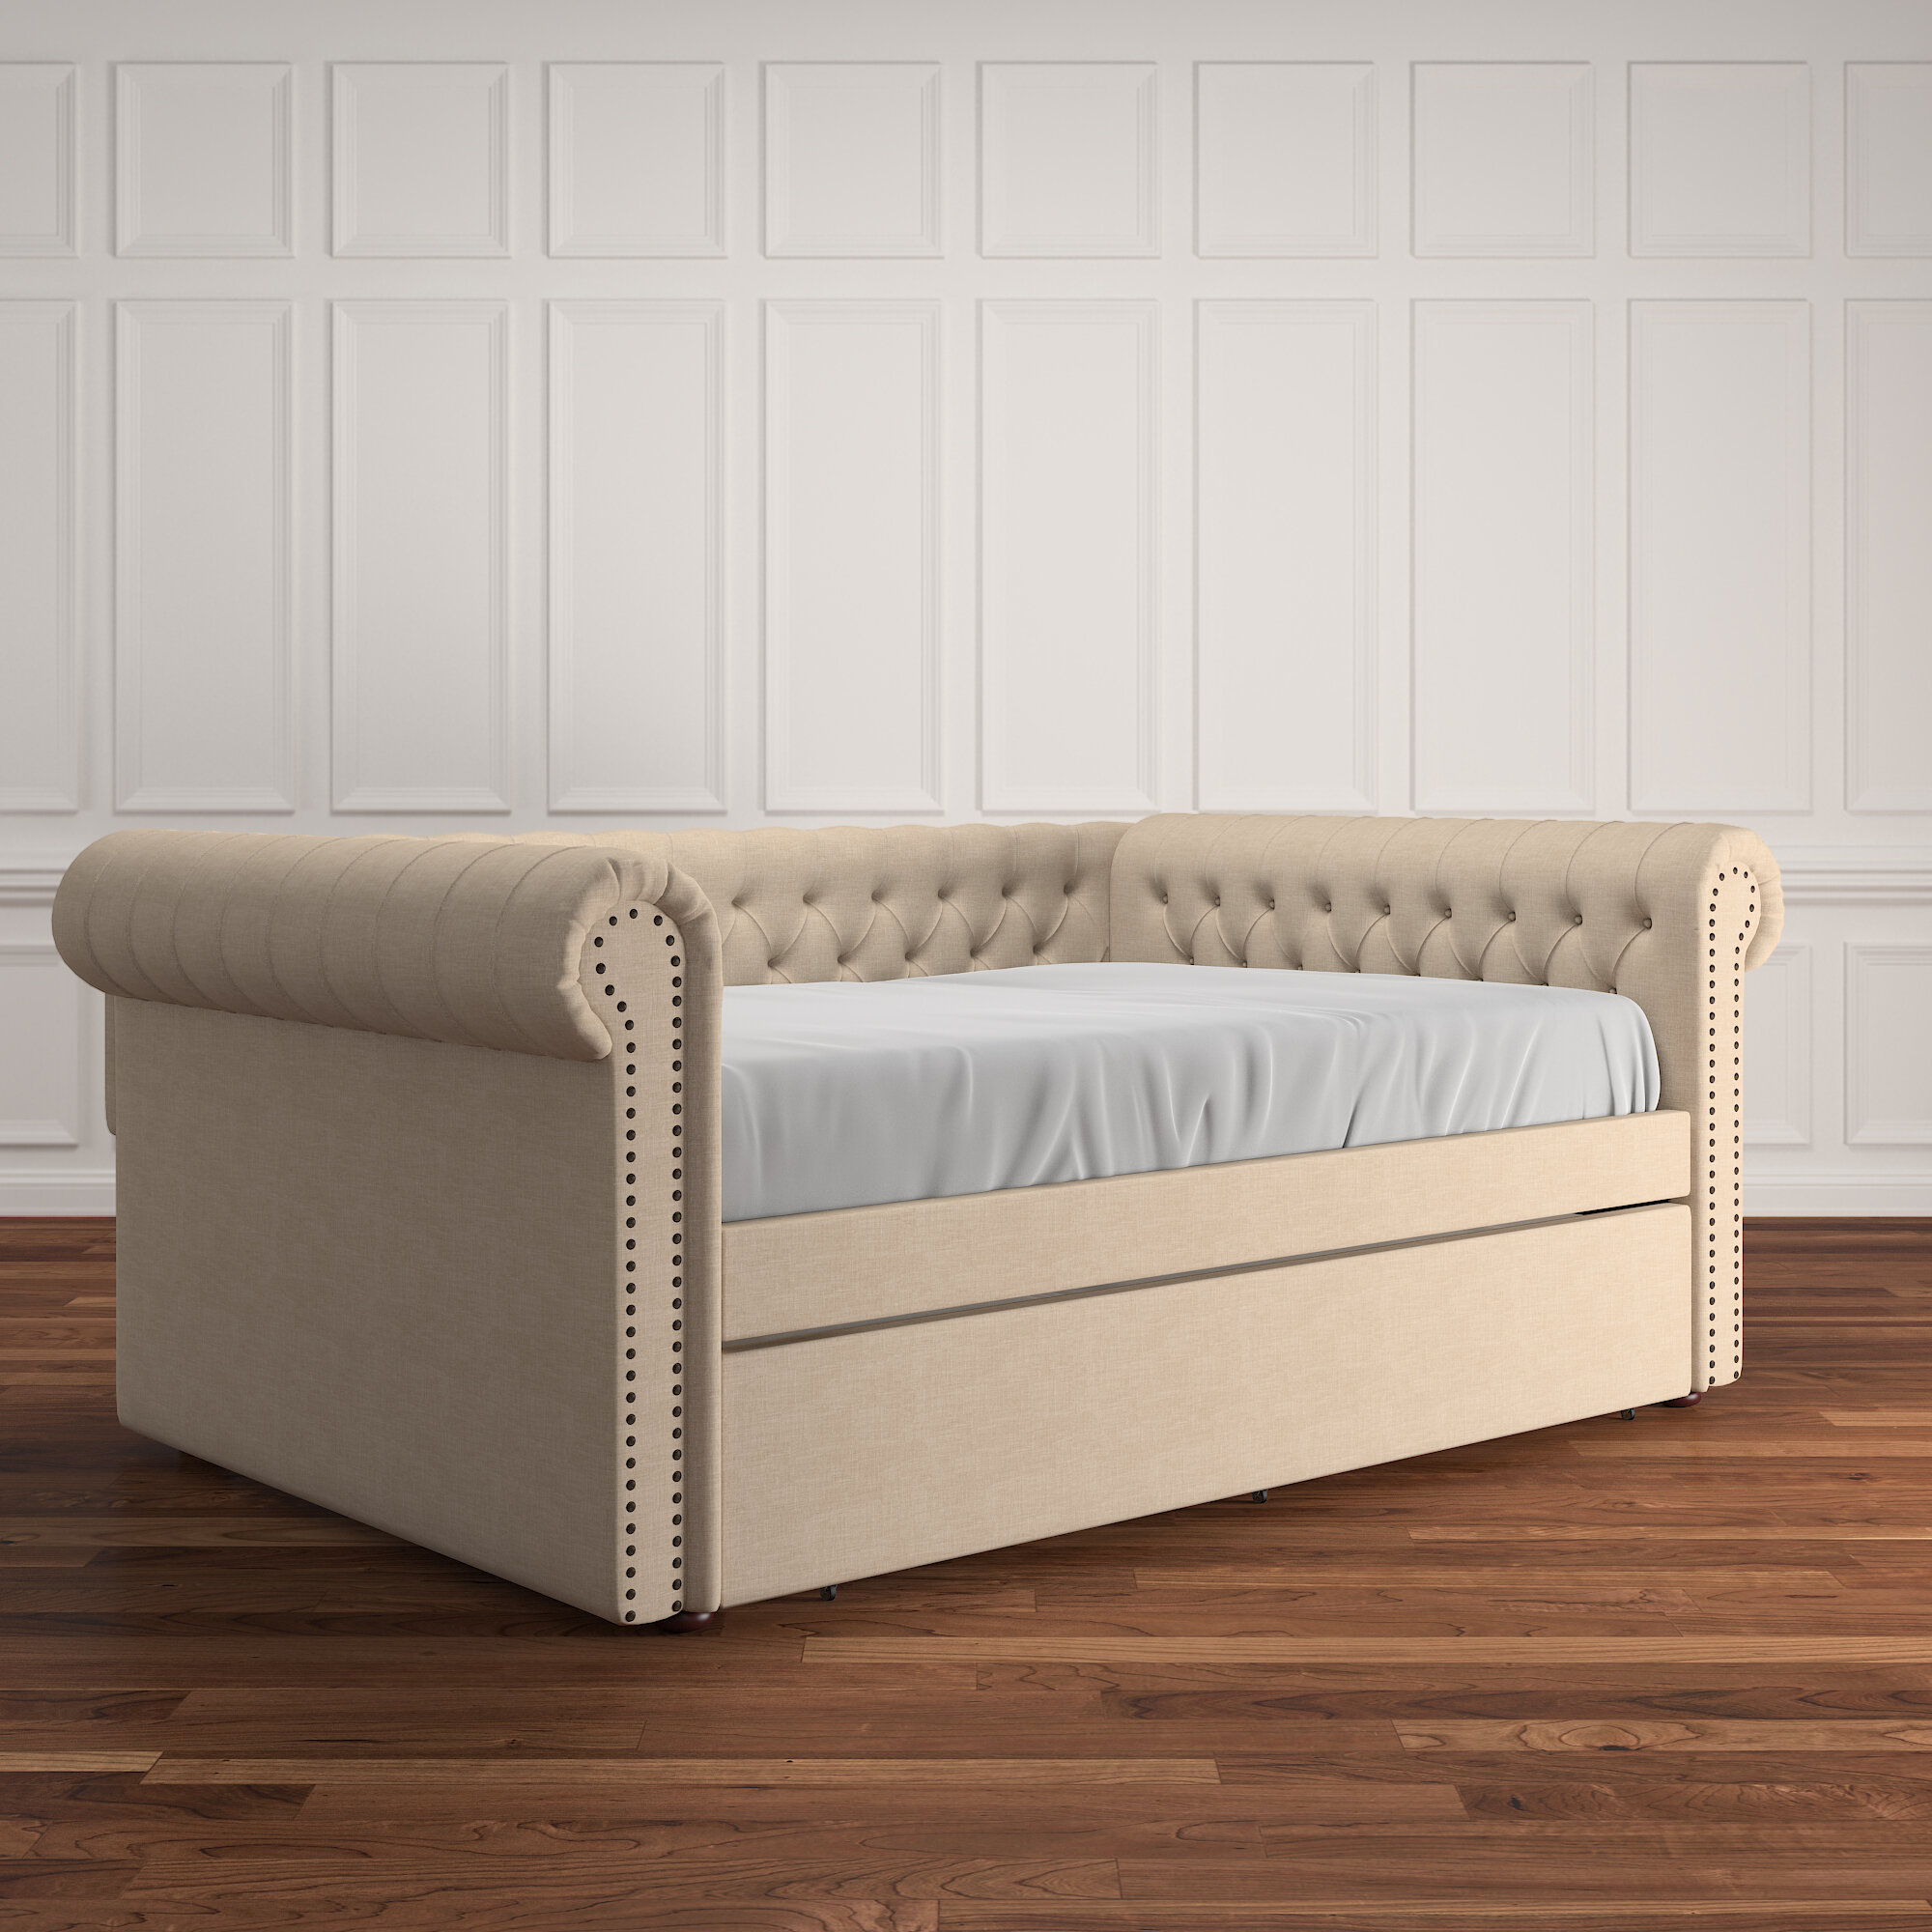 - Gowans Full Daybed With Trundle & Reviews Joss & Main